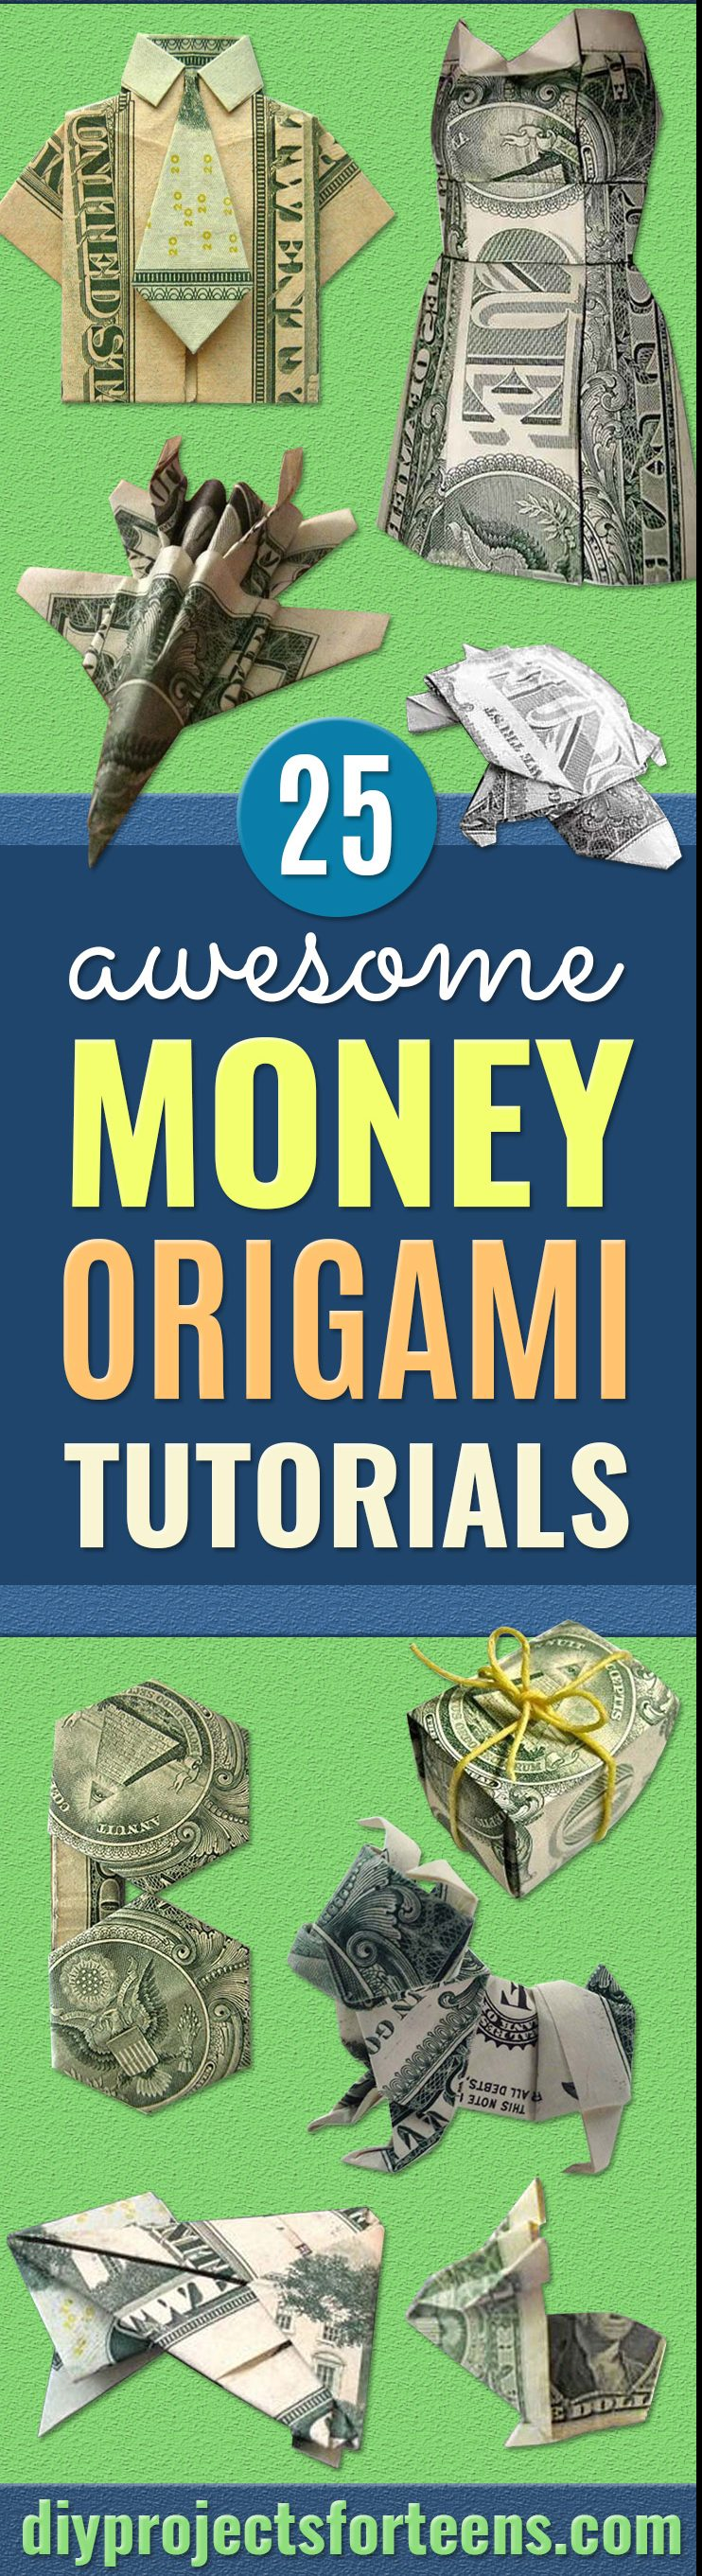 DIY Money Origami - Step by Step Tutorials for Star, Flower, Heart, Buttlerfly, Animals. Tree, Letters, Bow and Boxes - Cute DIY Gift Ideas for Birthday and Christmas Cards - DIY Projects and Crafts for Teens, Adults and Kids